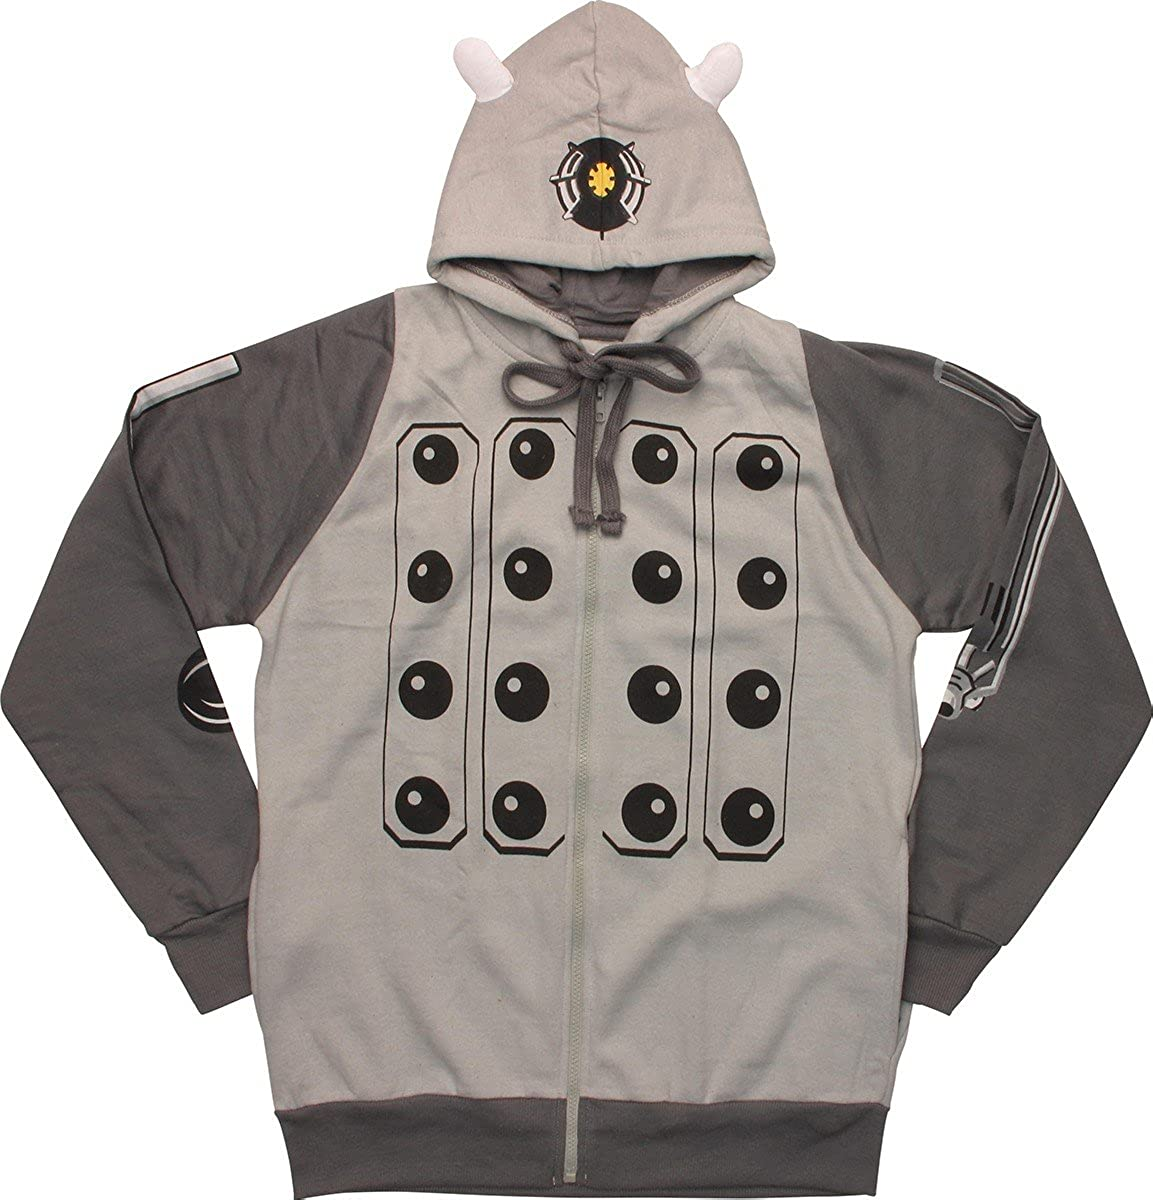 Raleigh Mall Doctor Who Gray Costume Max 82% OFF Hoodie Dalek